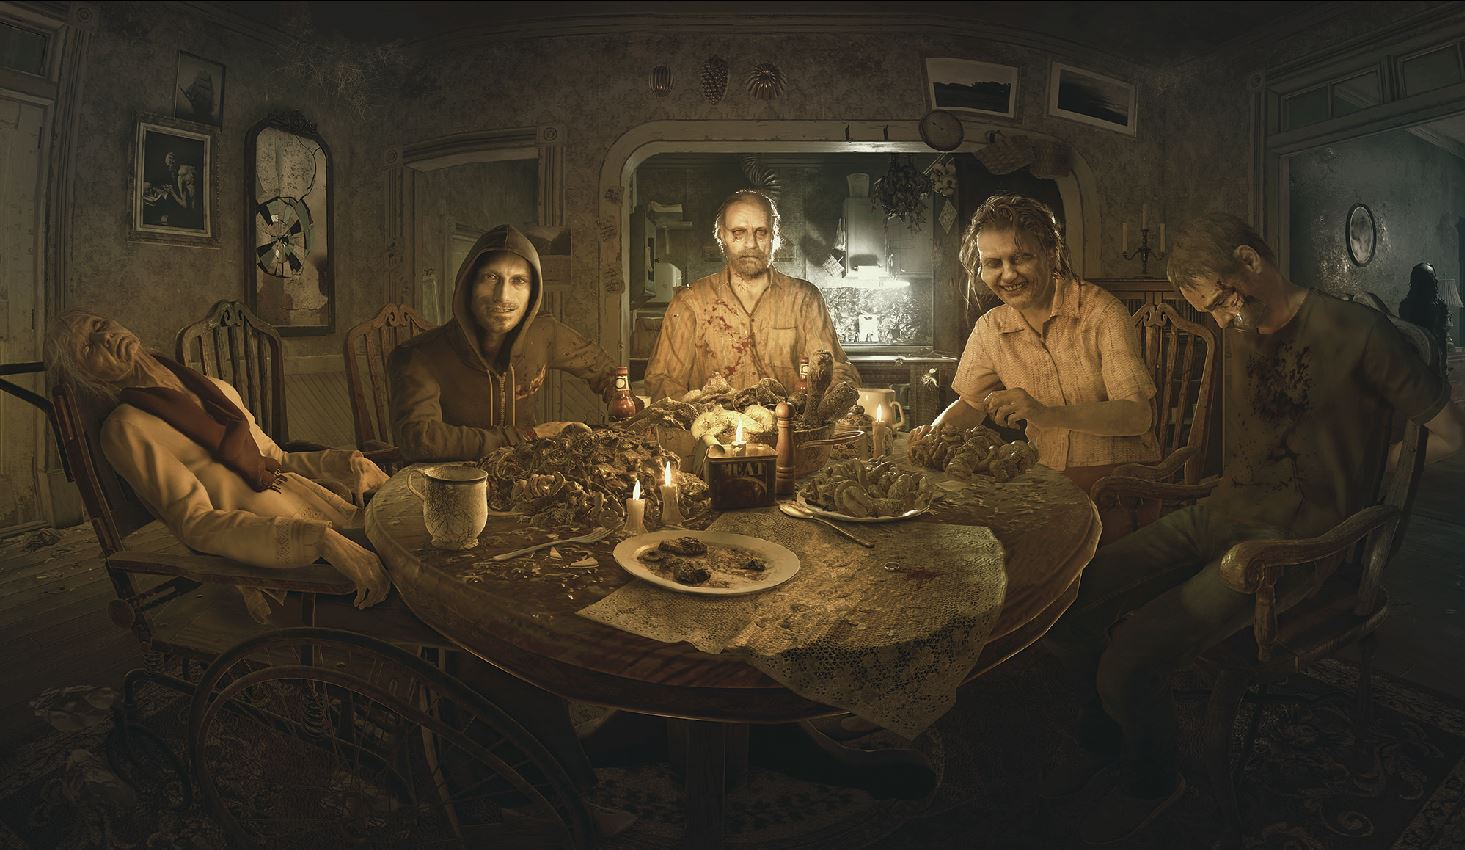 How Resident Evil 7 is molded by the hateful, terrified world of Trump and Brexit